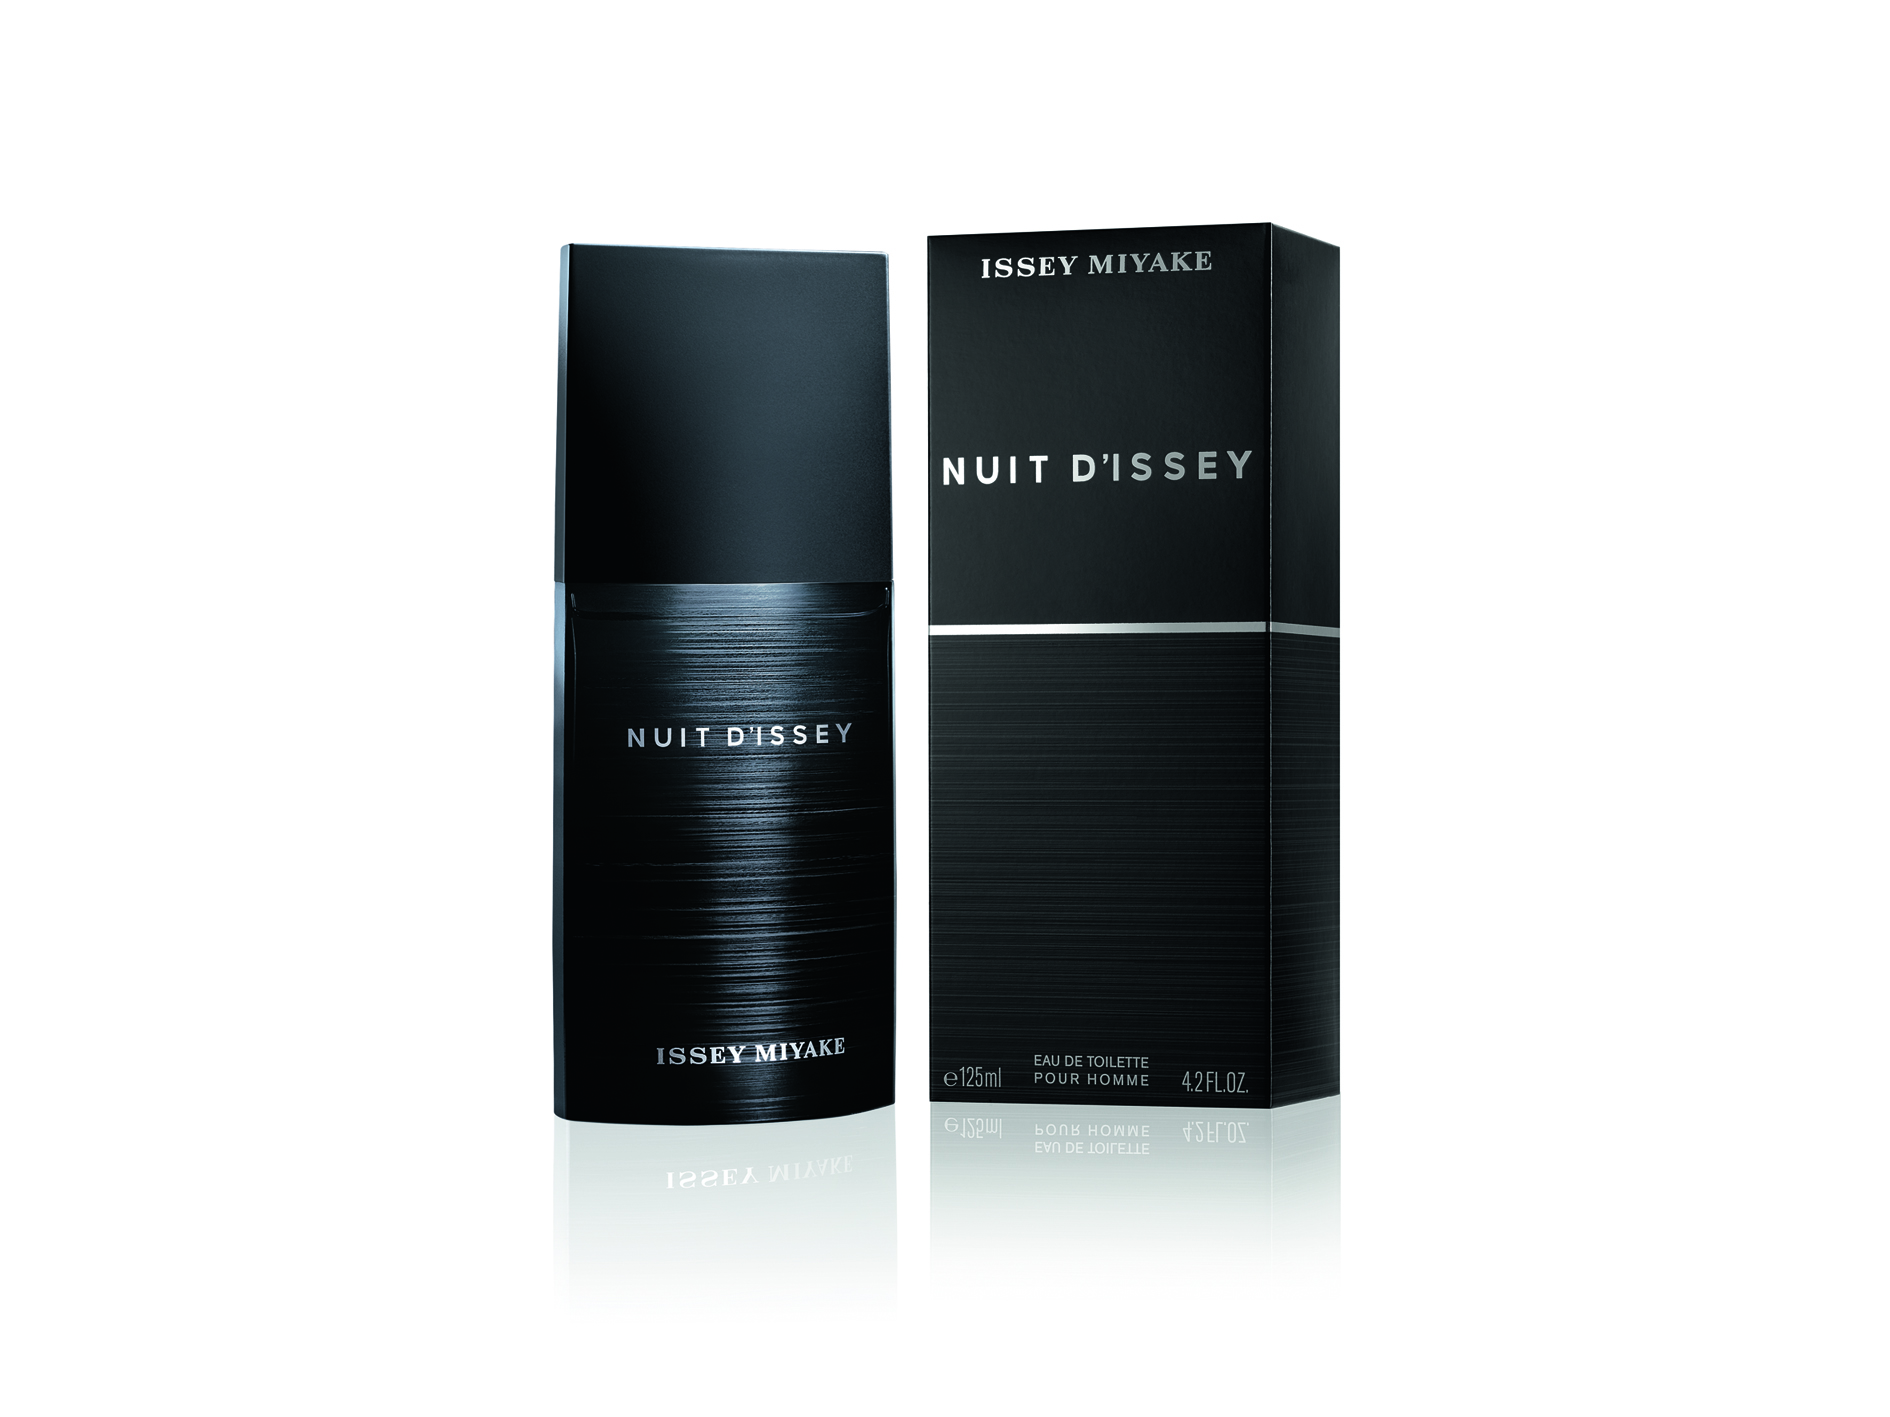 Nuit d'Issey, Issey Miyake